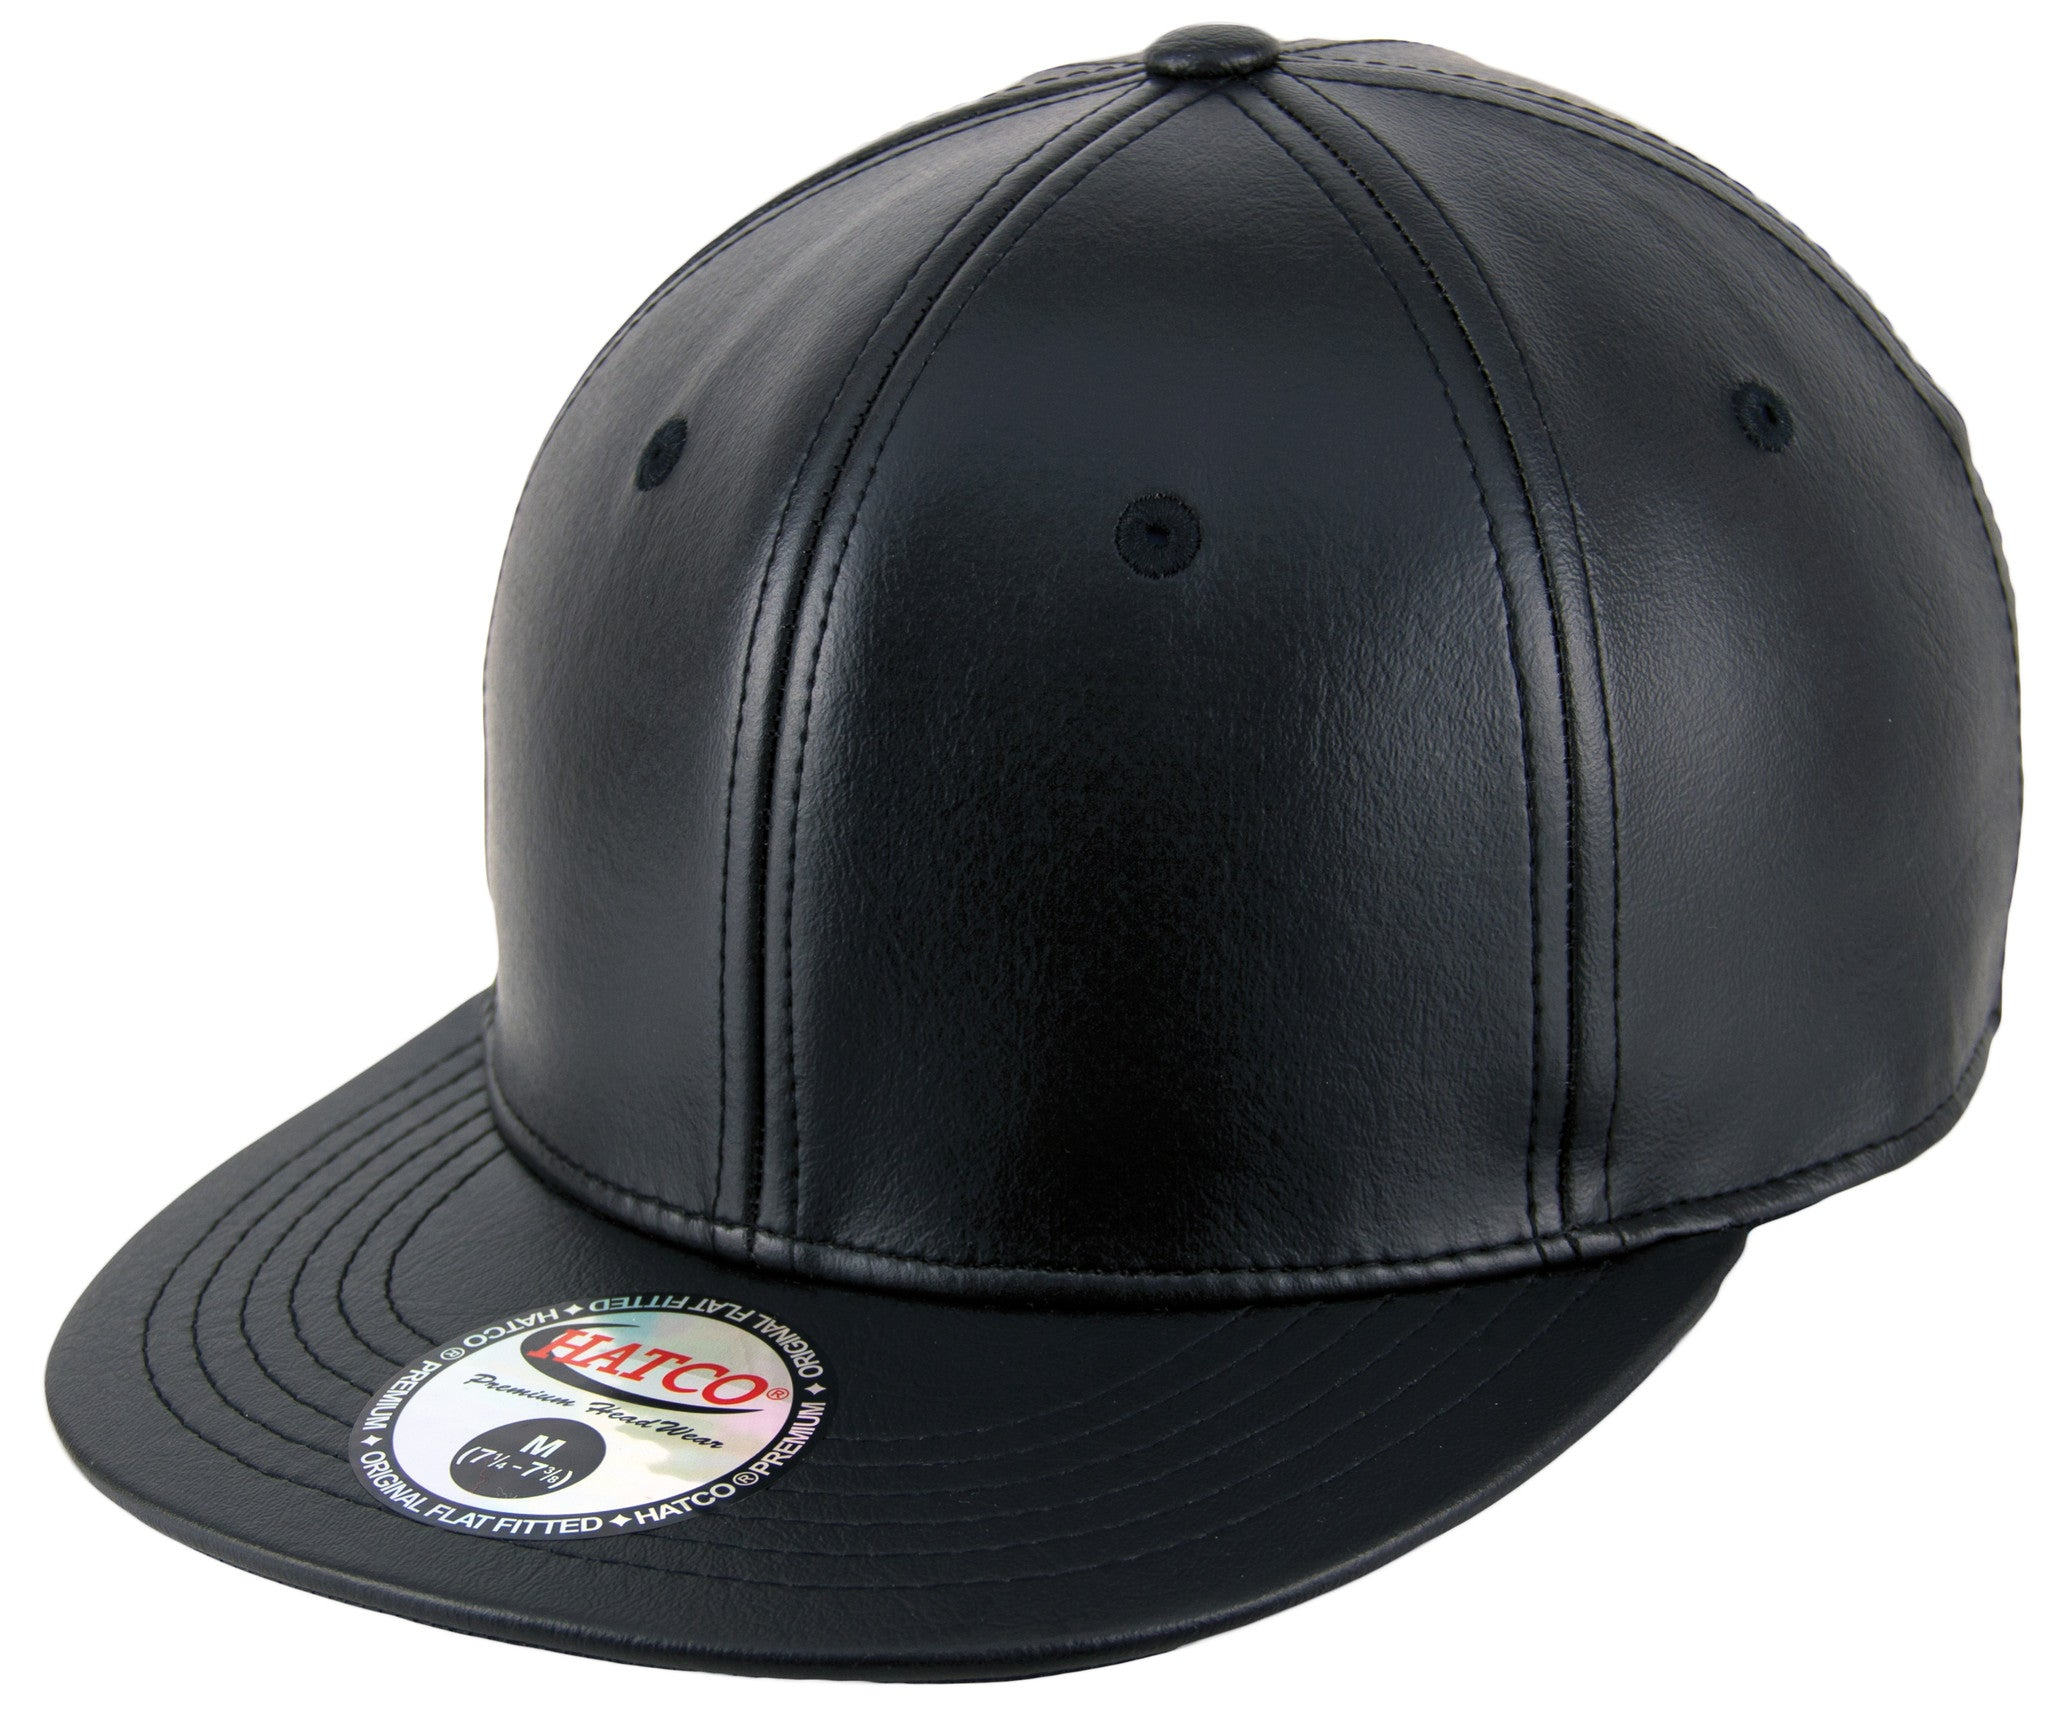 ... Blank PU Leather Fitted Caps - HATCOcaps.com - ... 3a6391077a3